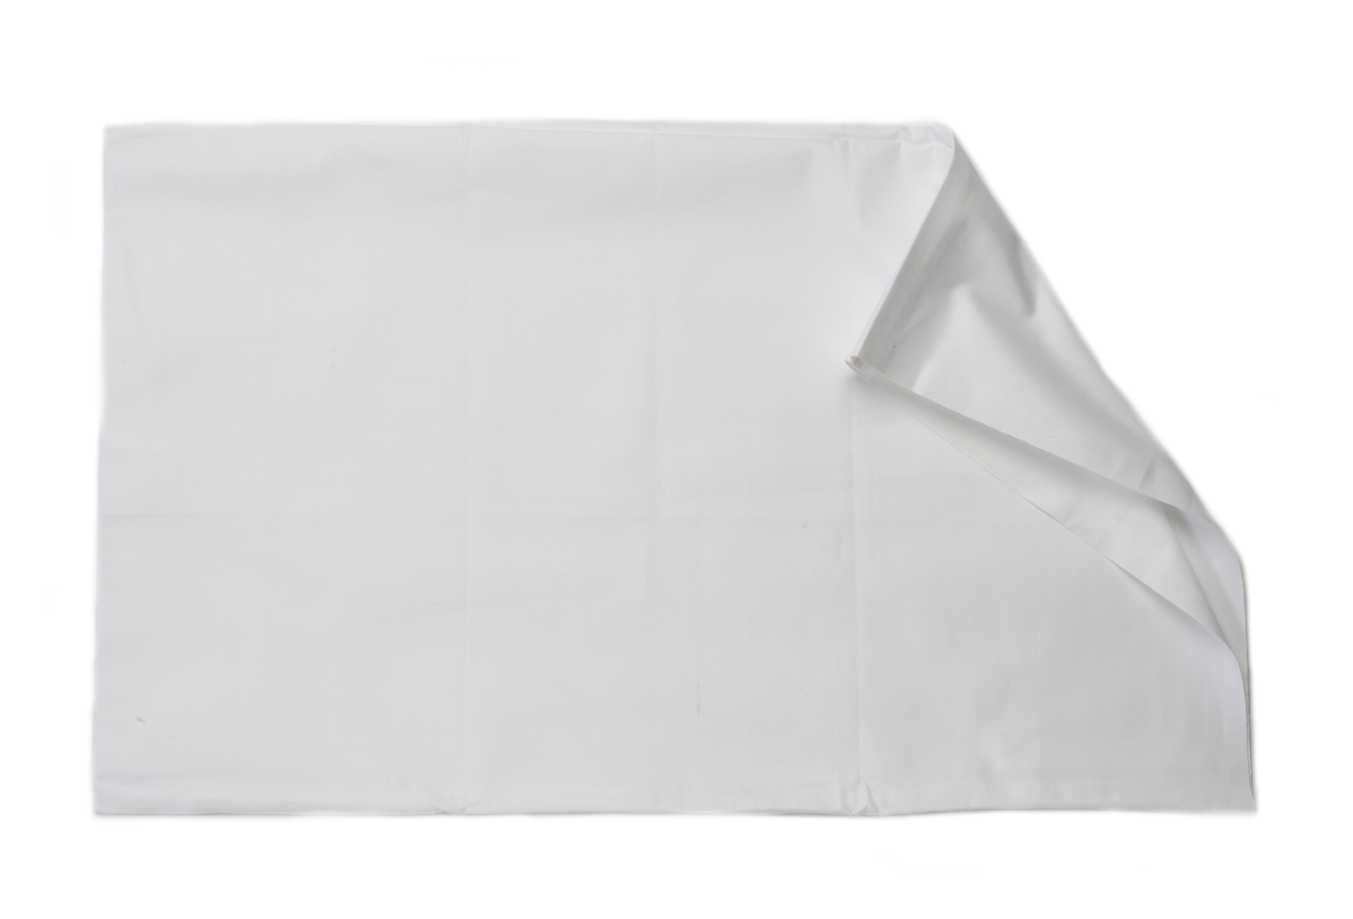 White Feather Pillow Tick Case Cover Slip Protector  eBay